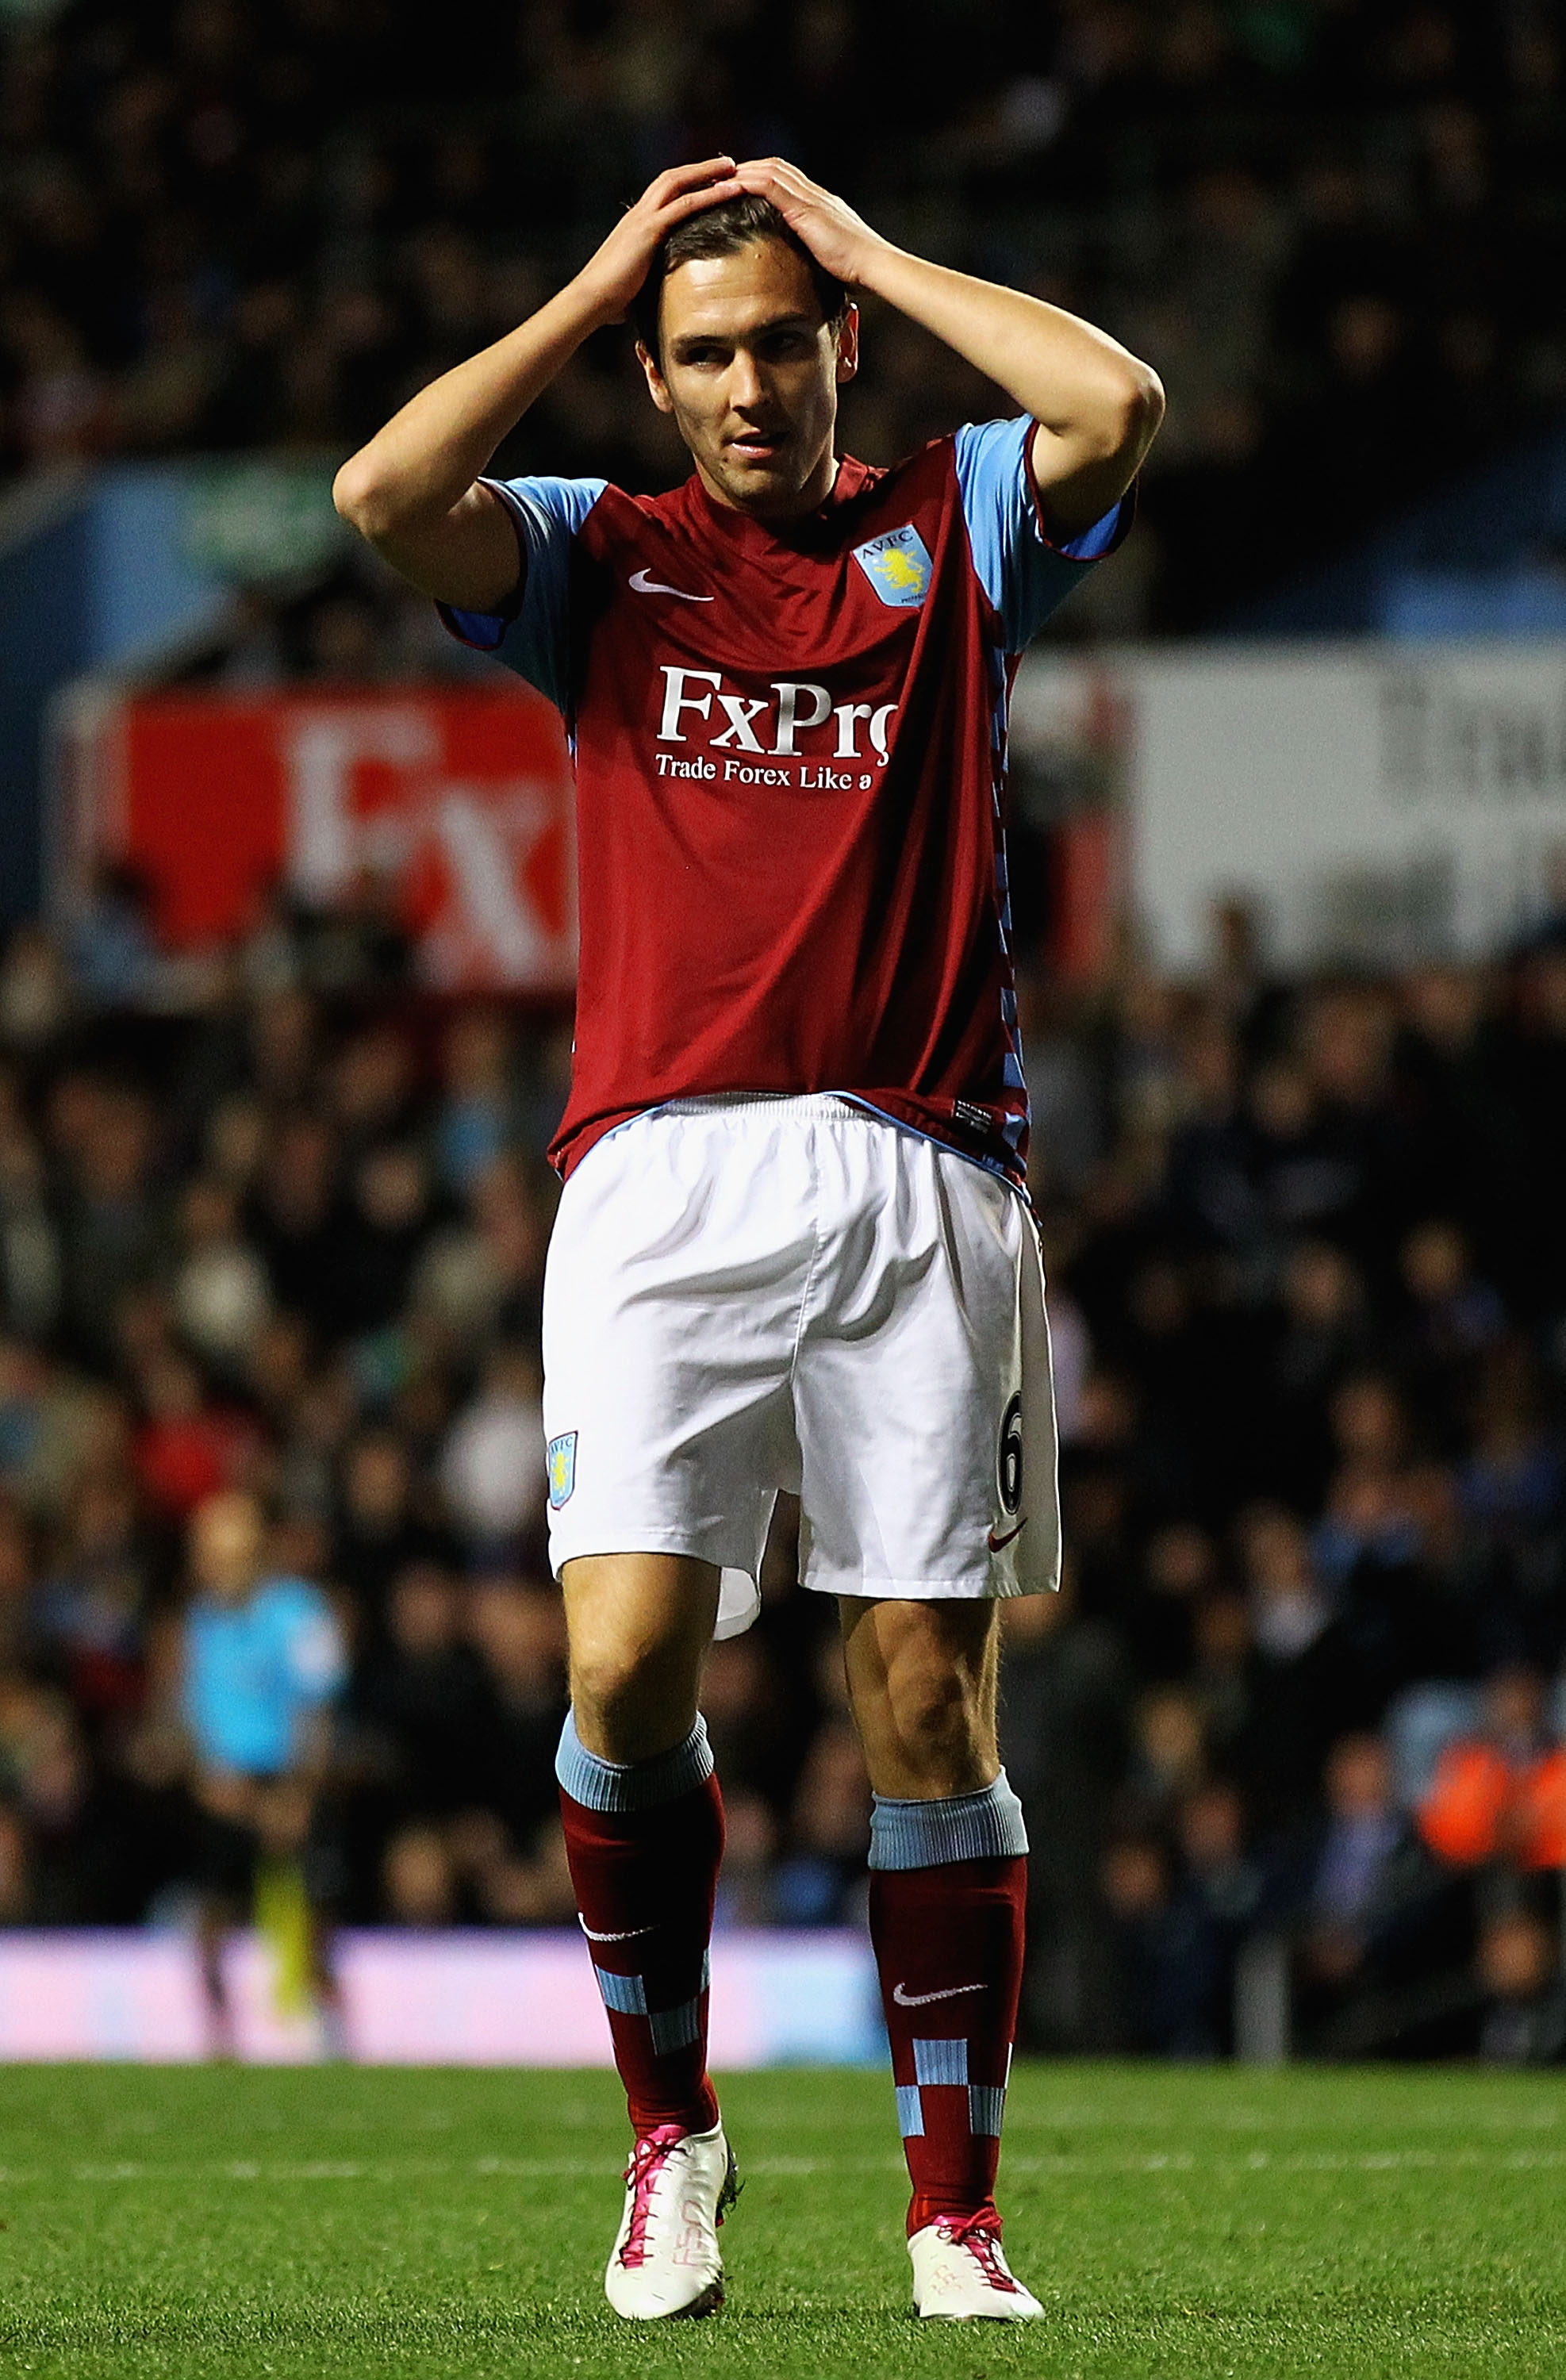 BIRMINGHAM, ENGLAND - OCTOBER 27:  Stuart Downing of Aston Villa looks on, after he missed a chance on goal during the Carling Cup Fourth Round match between Aston Villa and Burnley at Villa Park on October 27, 2010 in Birmingham, England.  (Photo by Matt